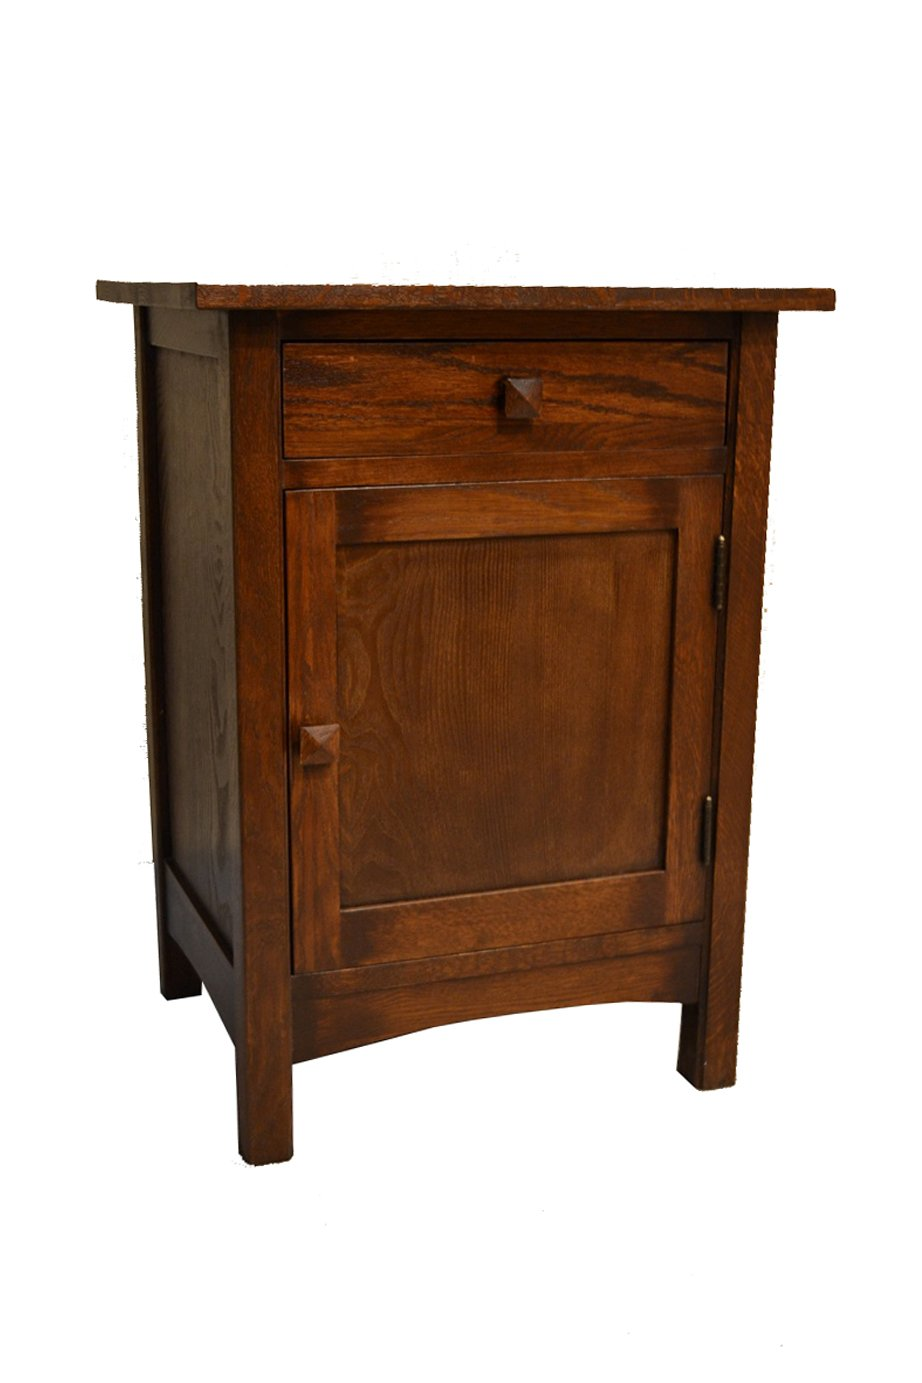 Crafters & Weavers Arts and Crafts Mission Nightstand End Table Made With Solid Oak